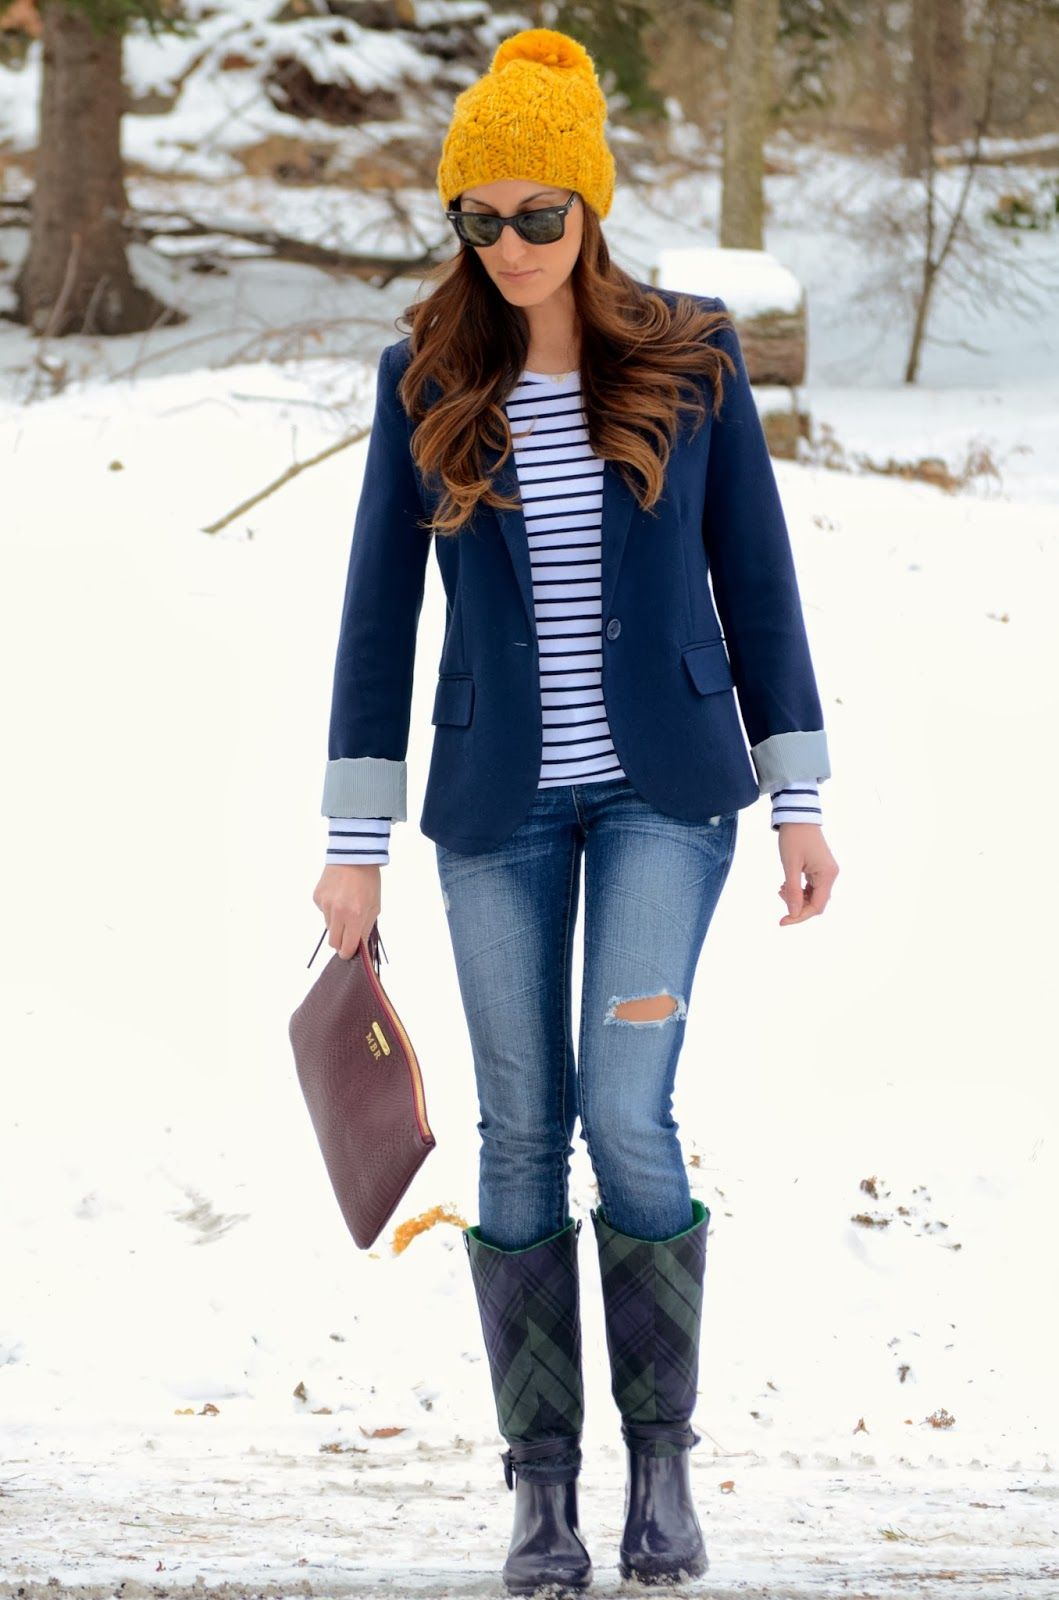 #winter #styles #hats Loving hats this season! Look cute ...